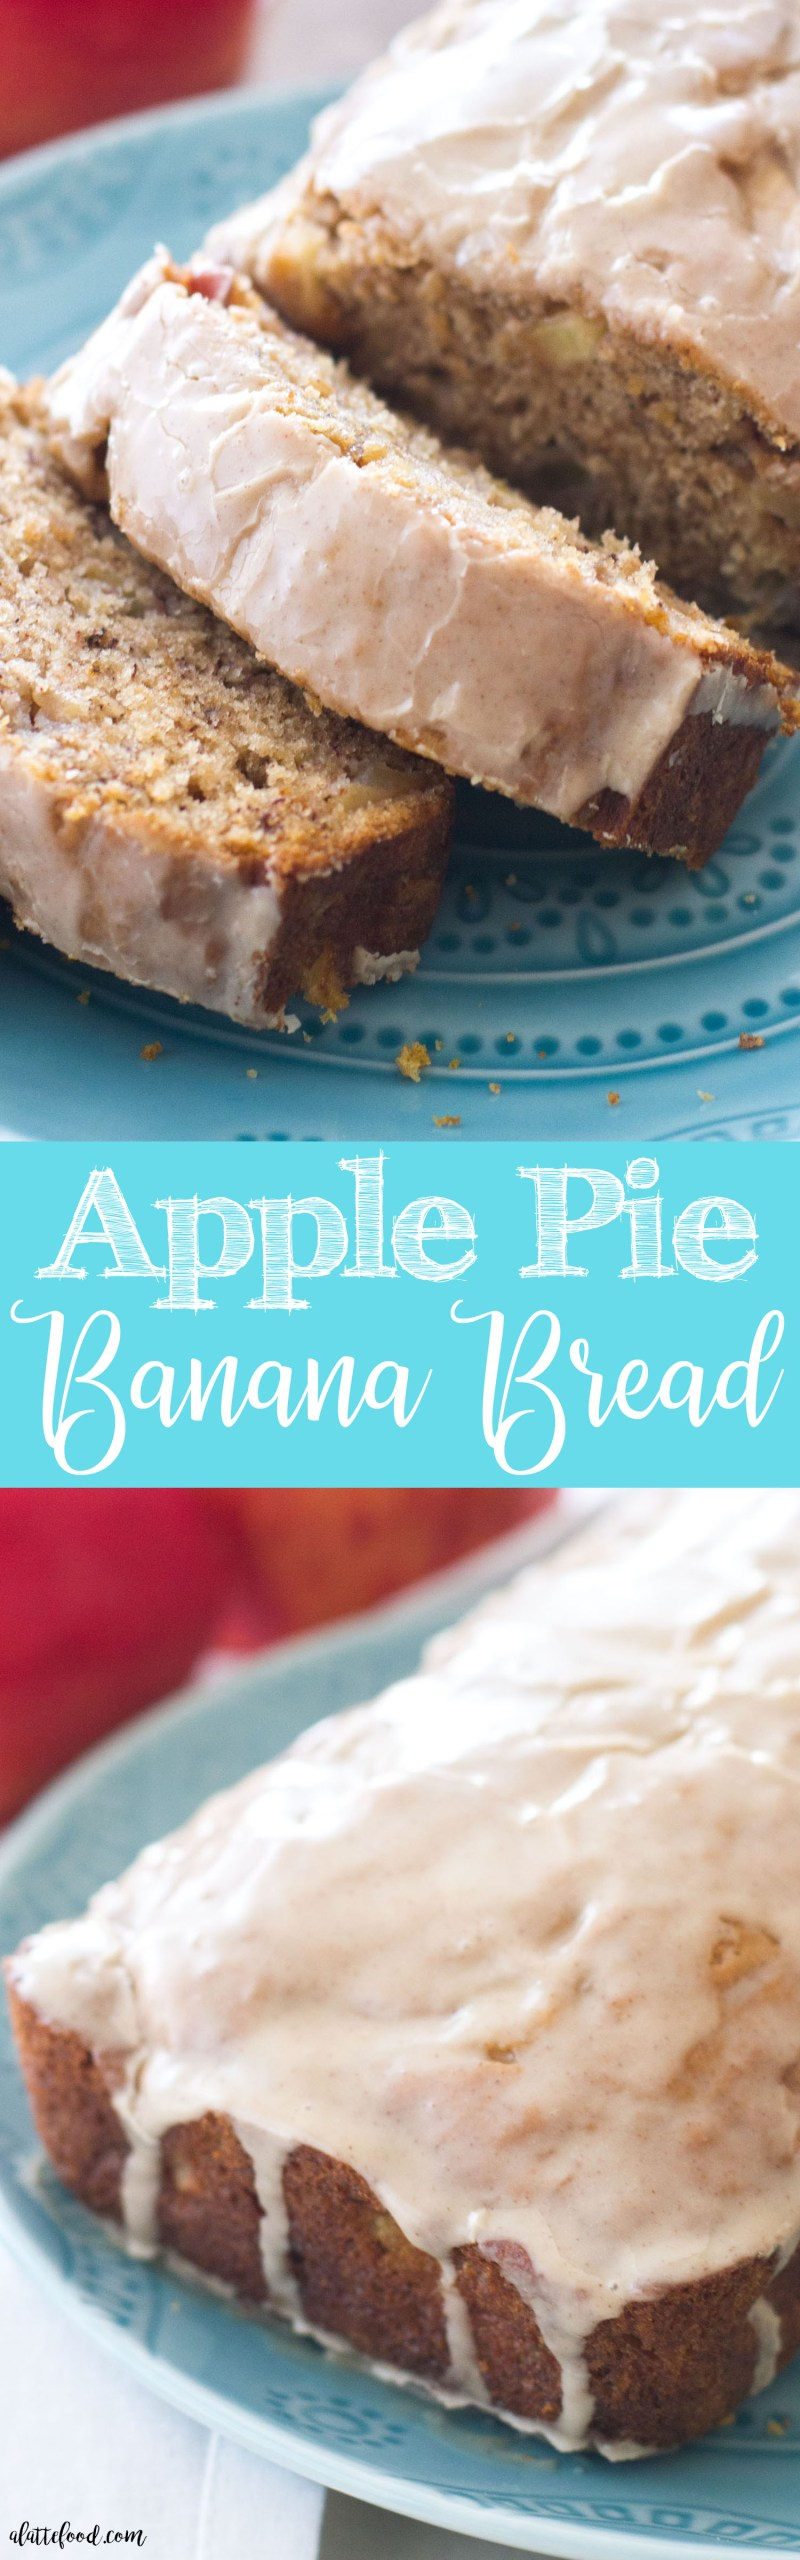 Sweet banana bread meets apple pie and makes the best fall dessert! Topped with a cinnamon vanilla glaze, this apple pie banana bread is pretty delish!